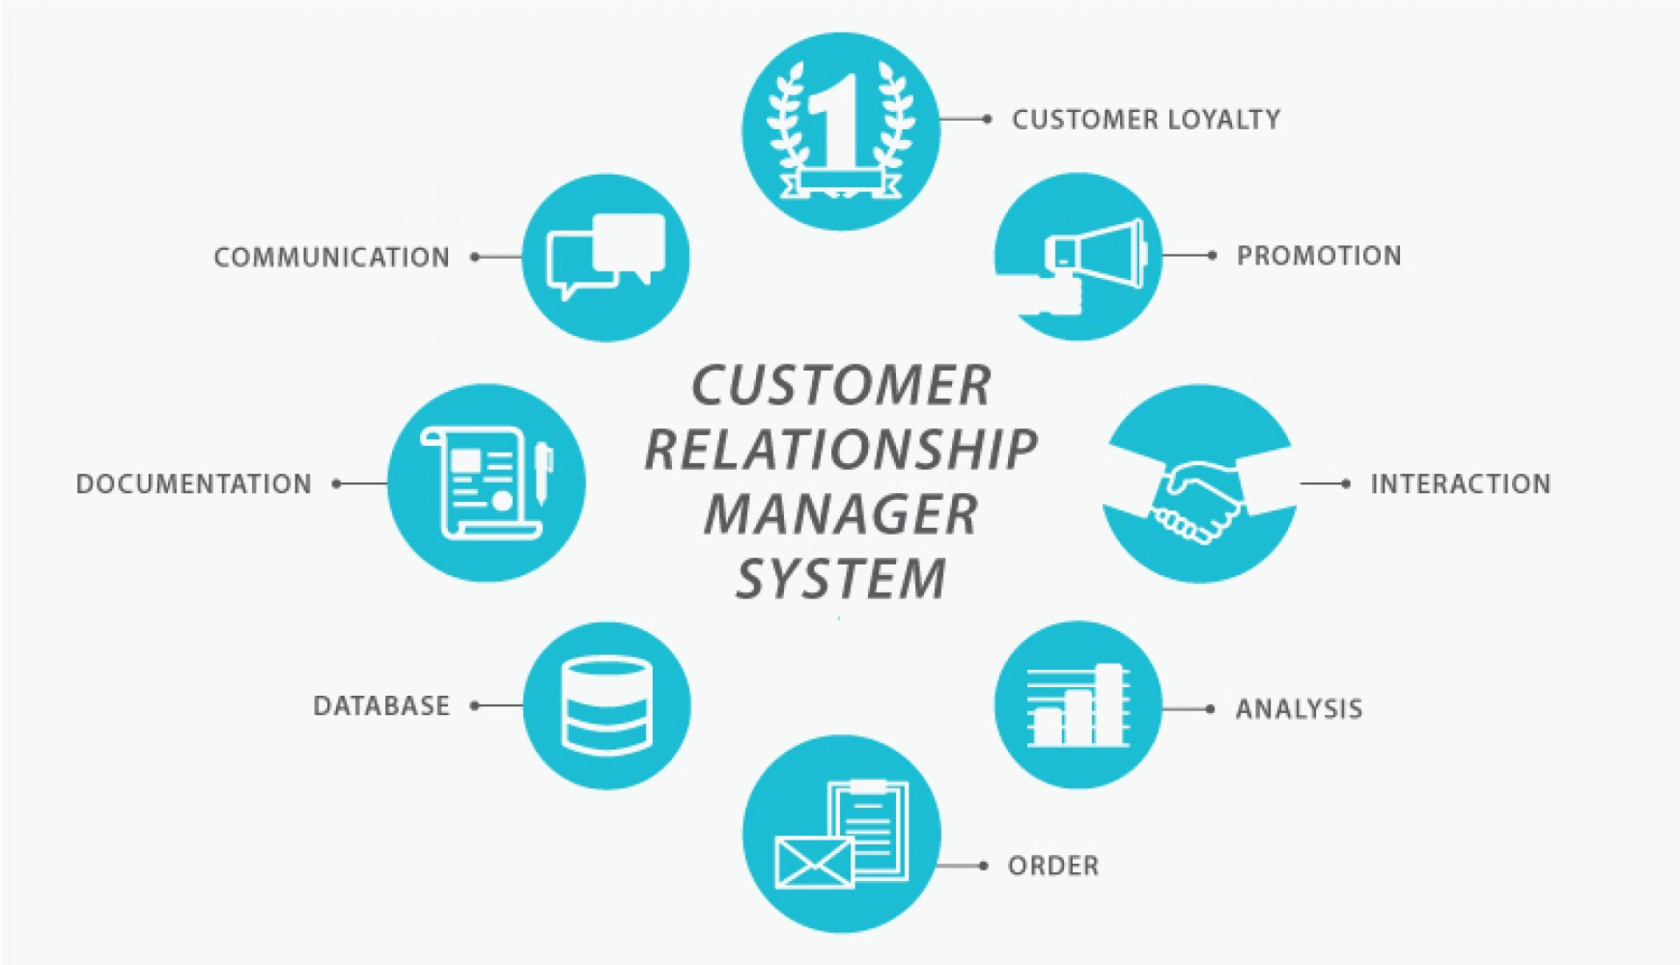 Customer relationship manager system: scheme of work